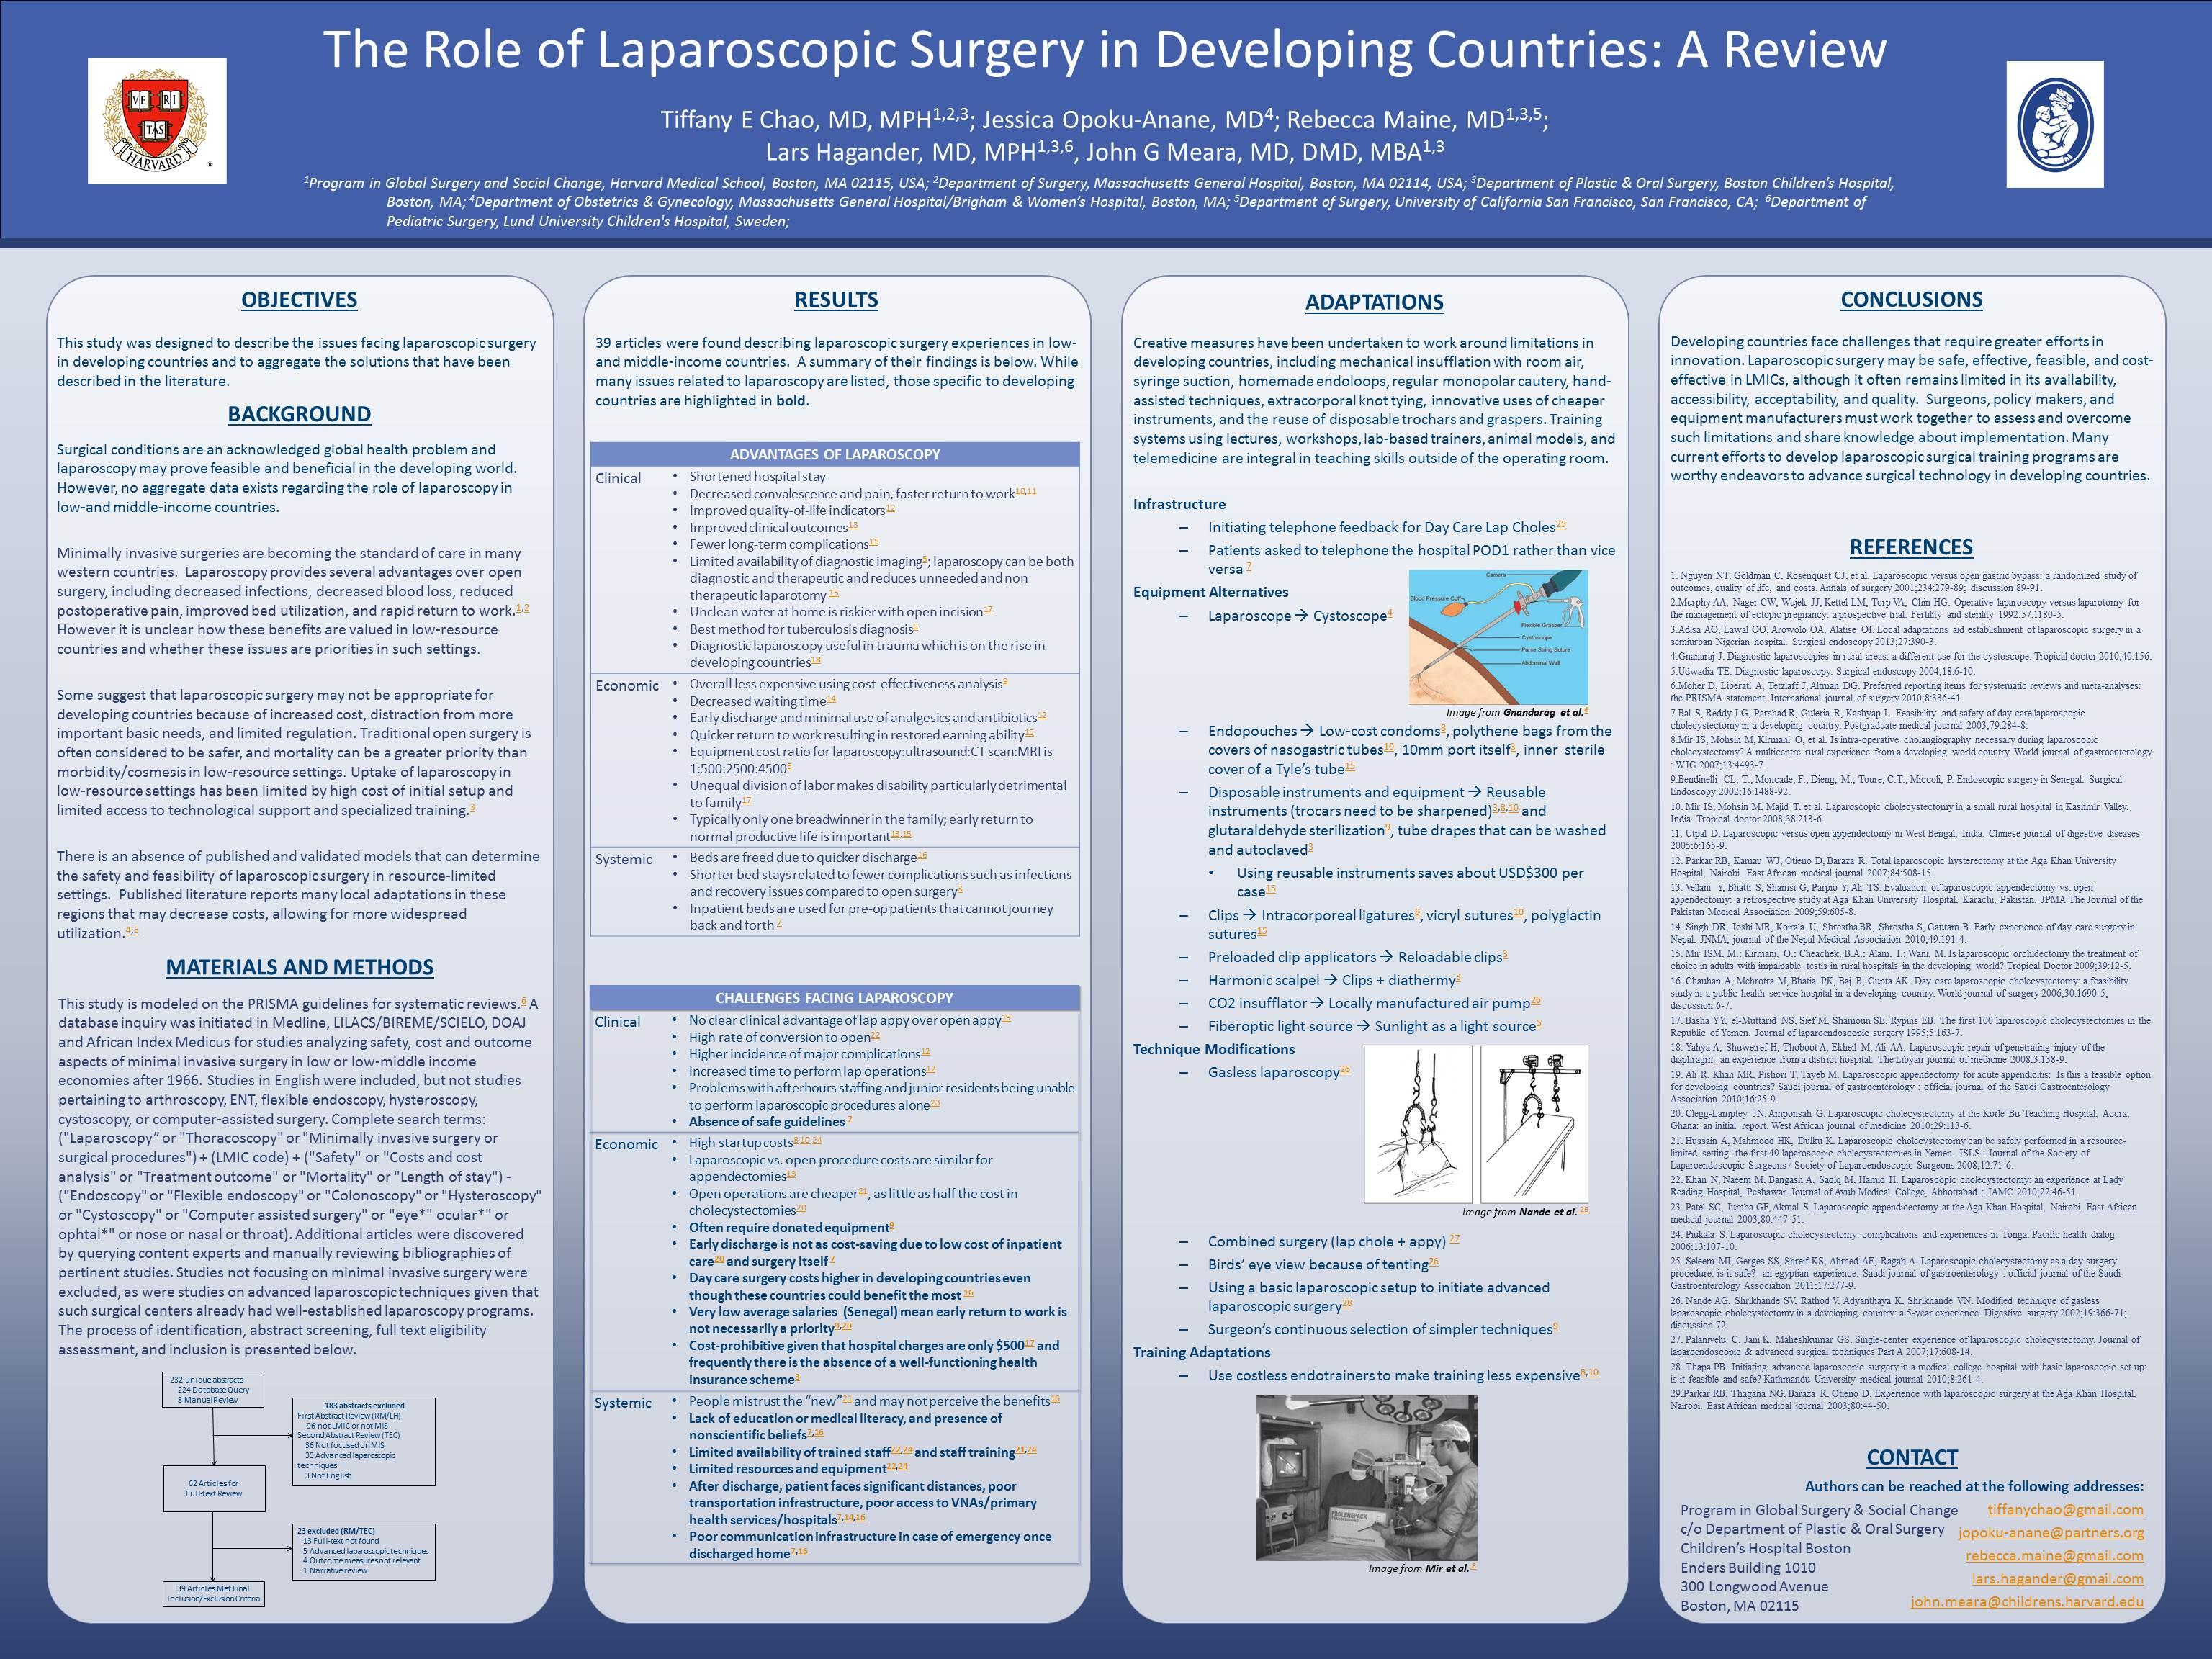 The role of laparoscopic surgery in developing countries: A